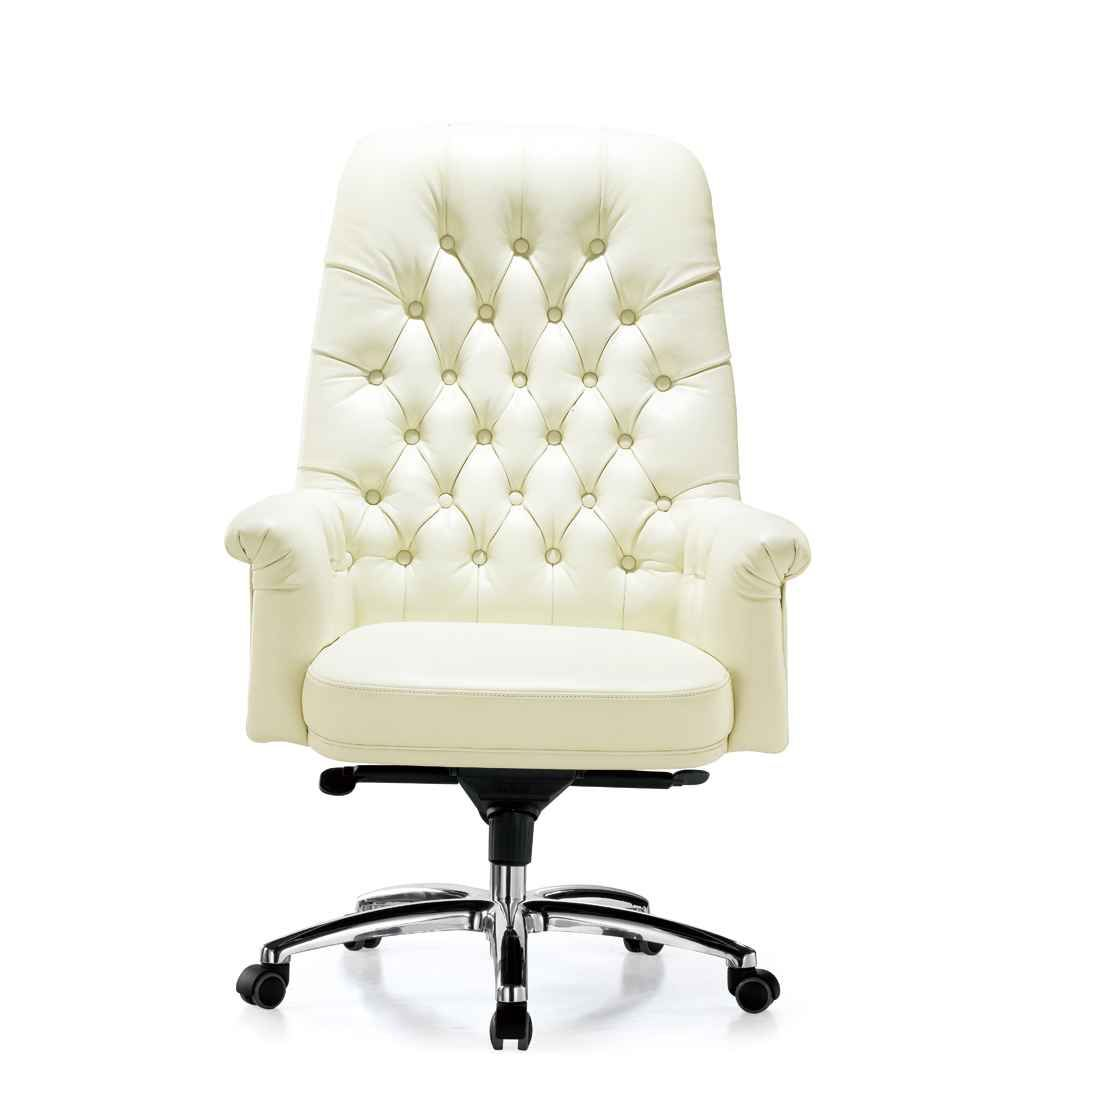 Swivel Luxury White Leather Office Chair Comfortable And Stylish The Perfect Combination